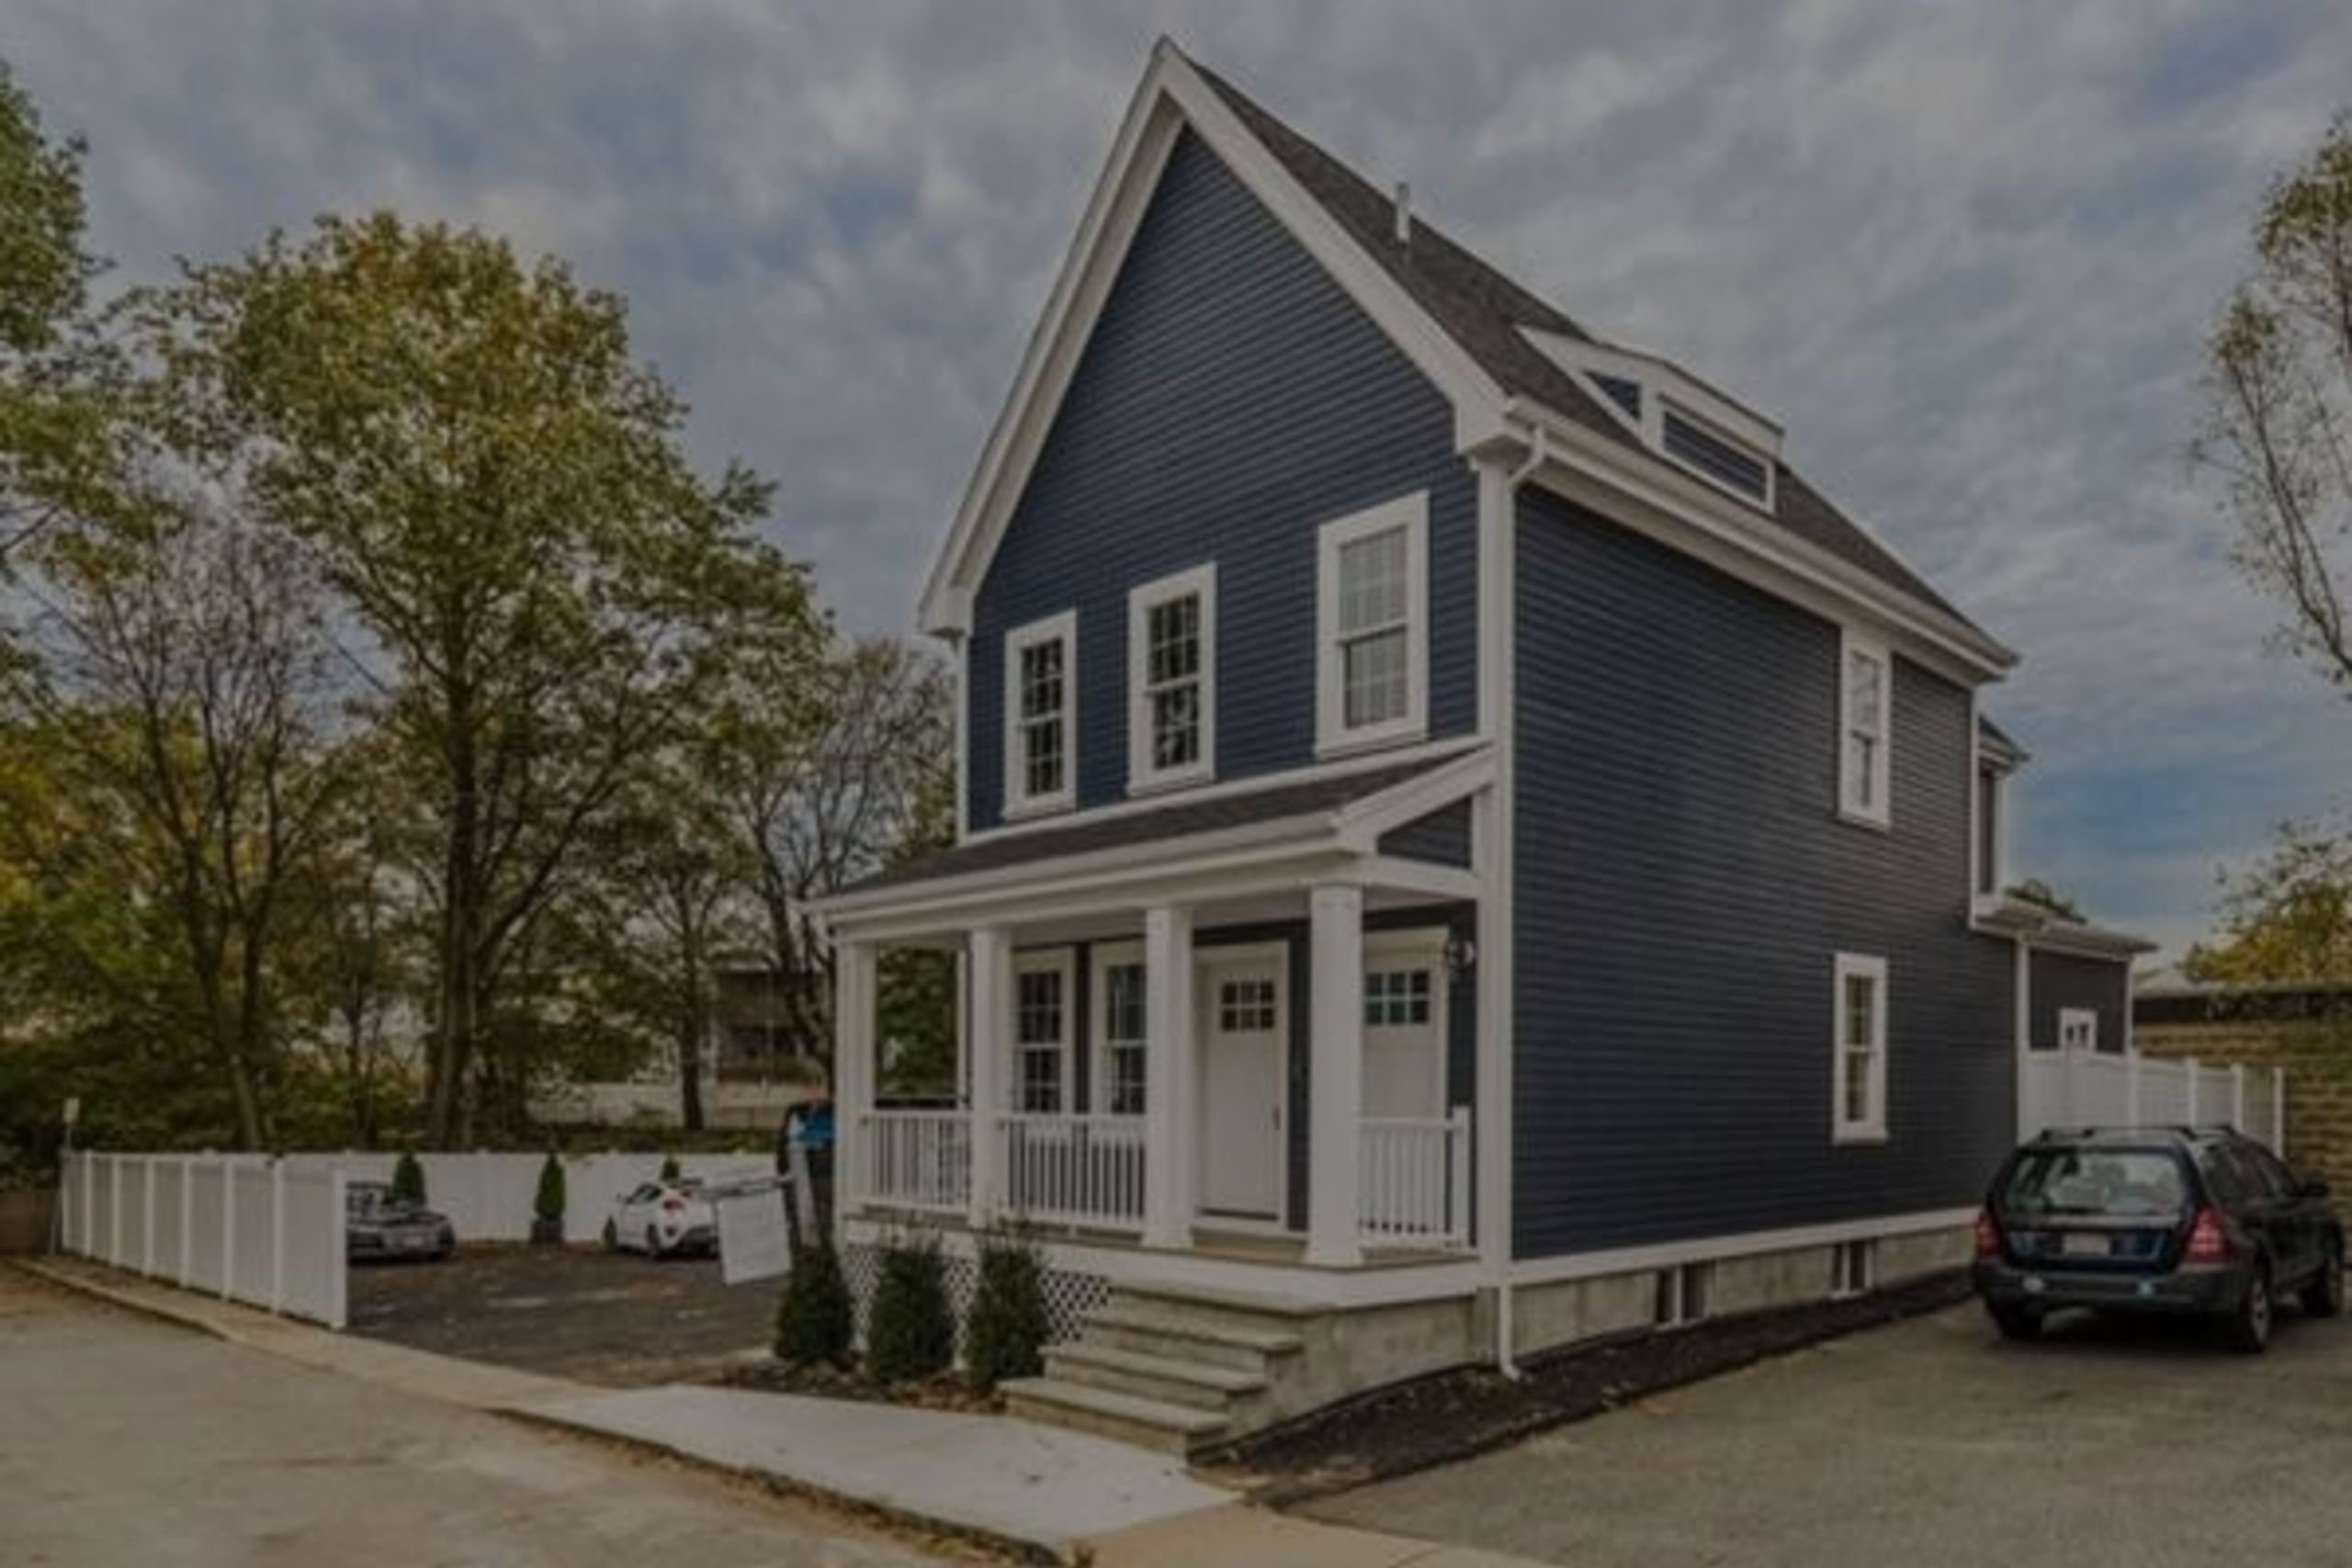 5 Open Houses In Somerville This Weekend